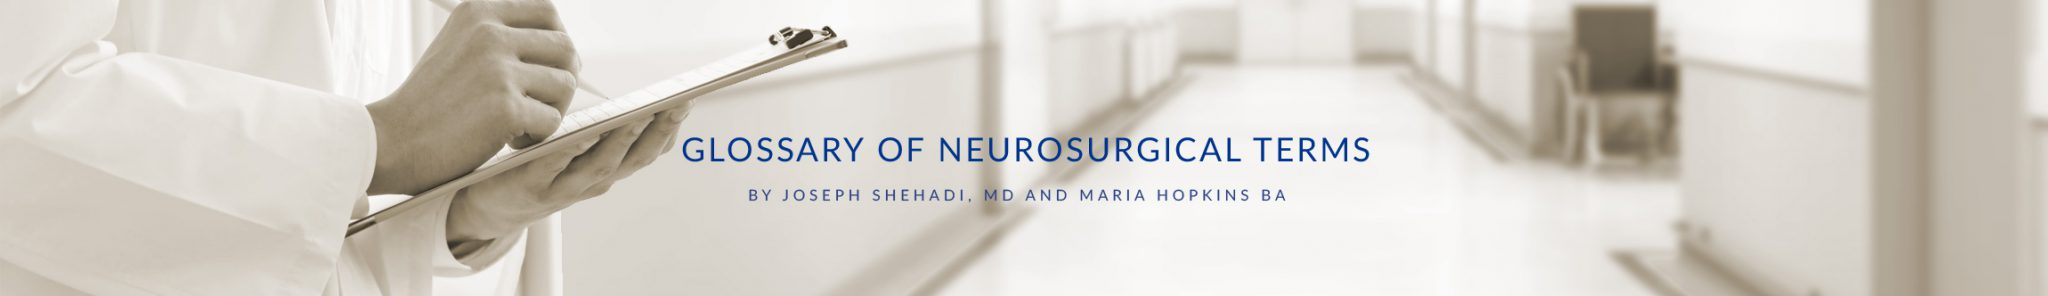 Glossary of Neurosurgical Terms